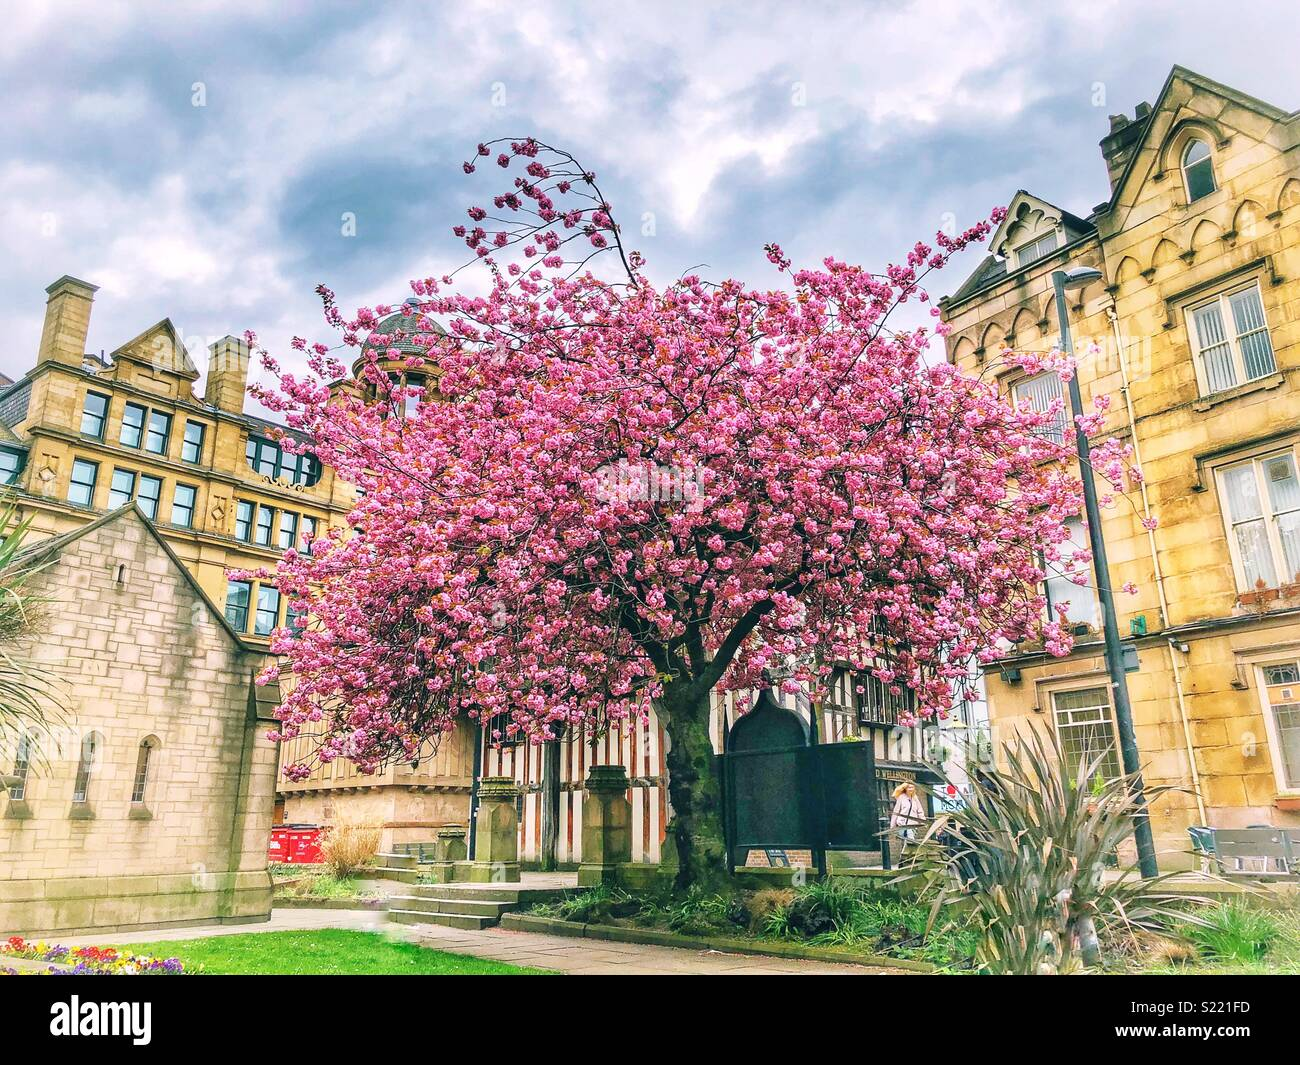 Blossom in Cathedral Gardens, Manchester - Stock Image